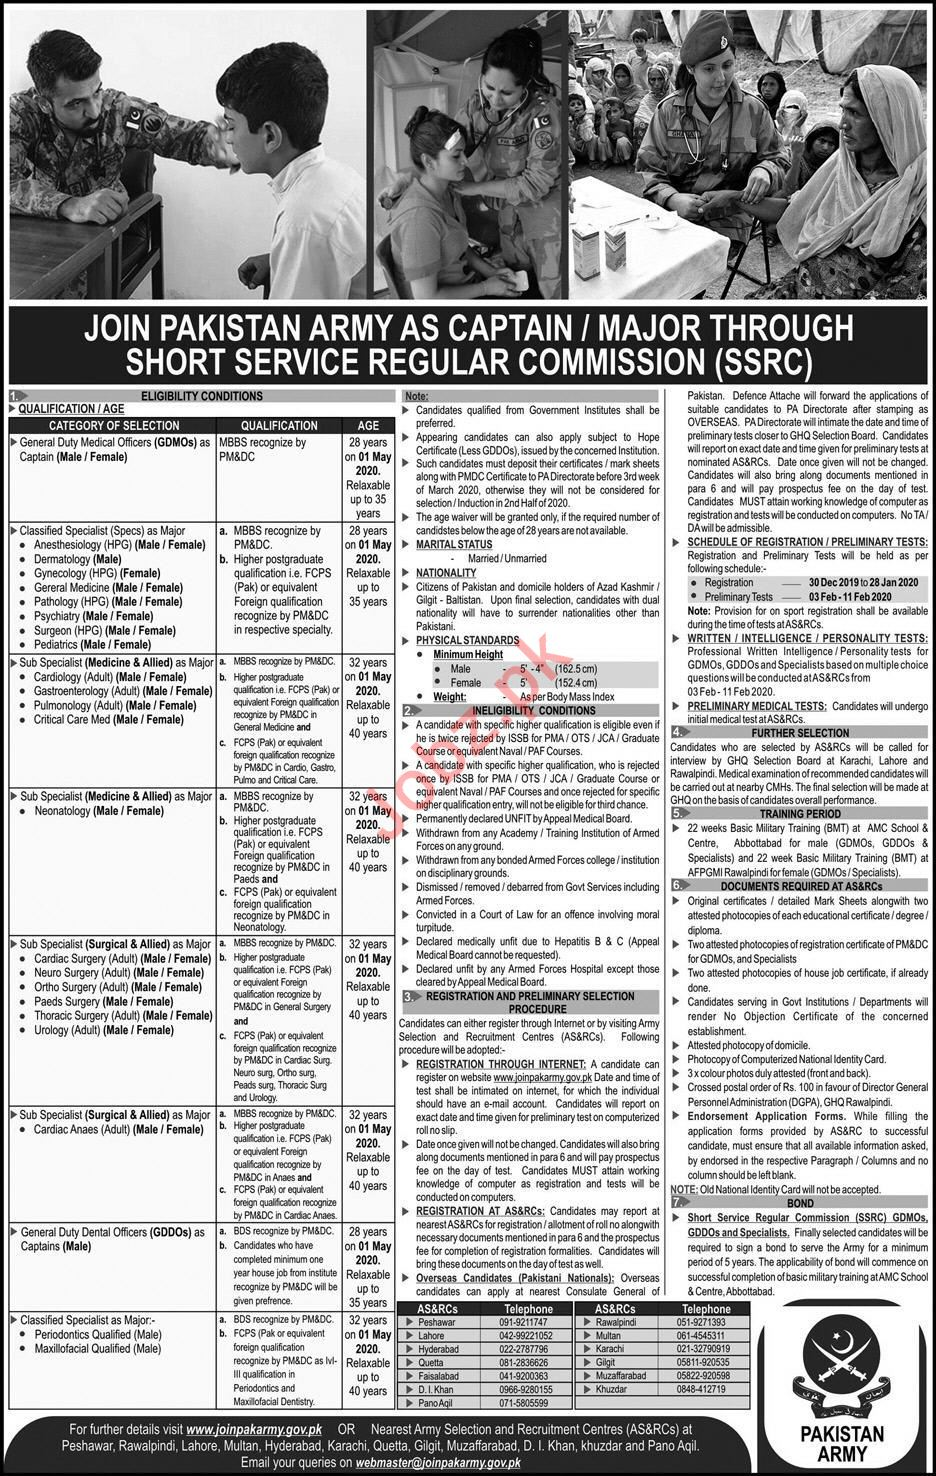 Join Pakistan Army As Captain & Major through SSRC